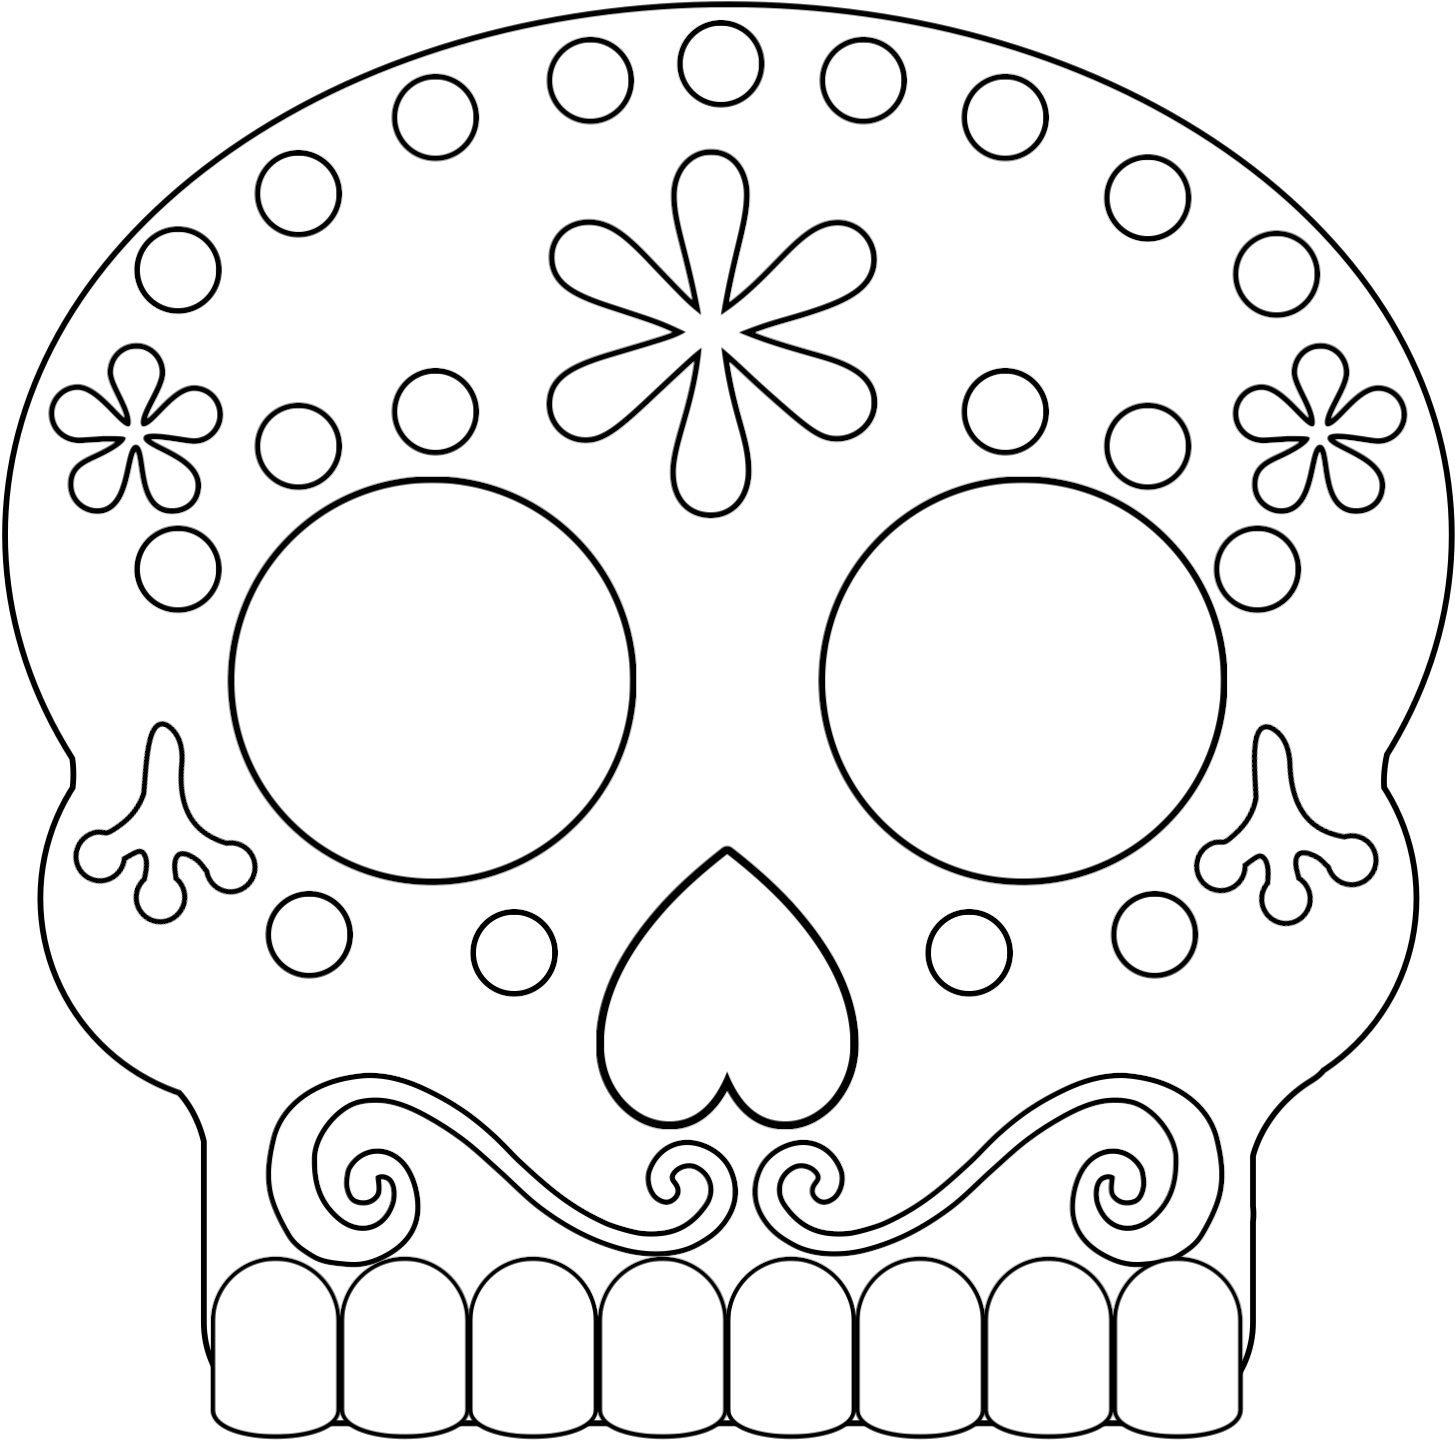 Sugar Skull Coco Coloring Pages, HD Png Download - vhv | 1440x1455